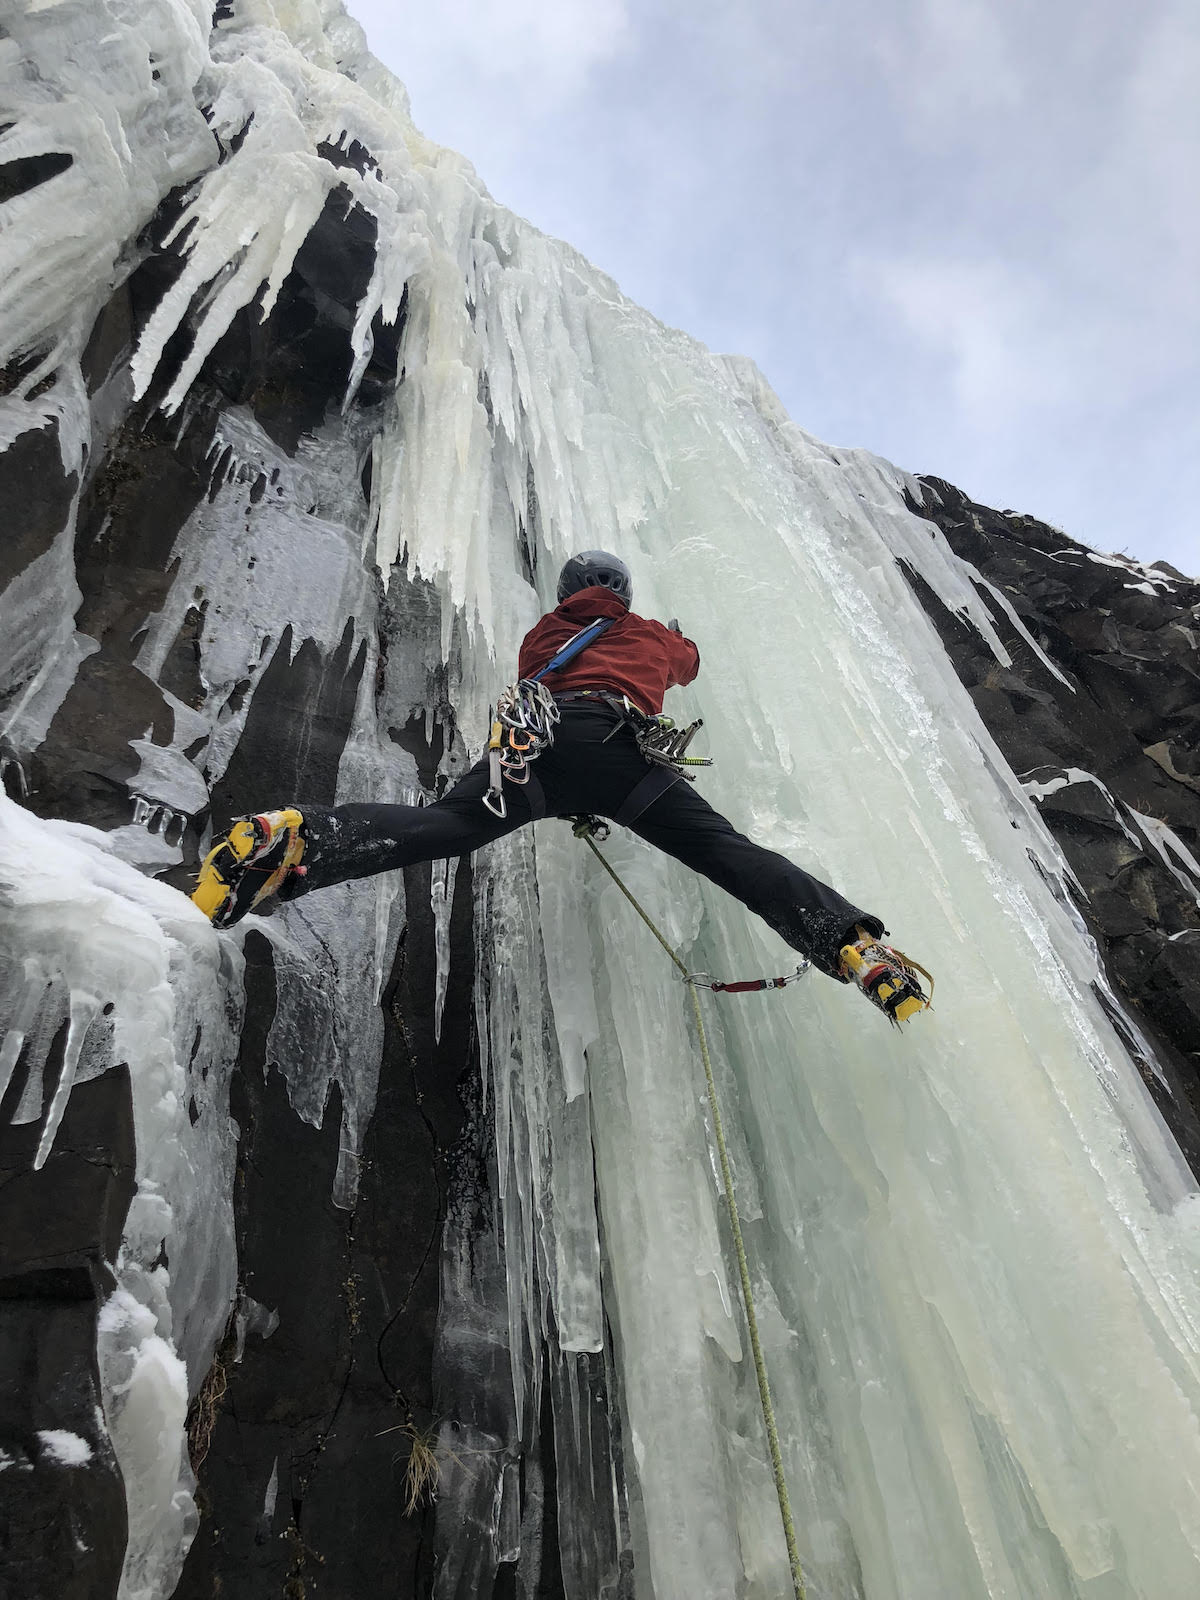 Preston leading The Good Looking One (WI5) in Hyalite Canyon with the Black Diamond Reactor tools. [Photo] Matt Angelo